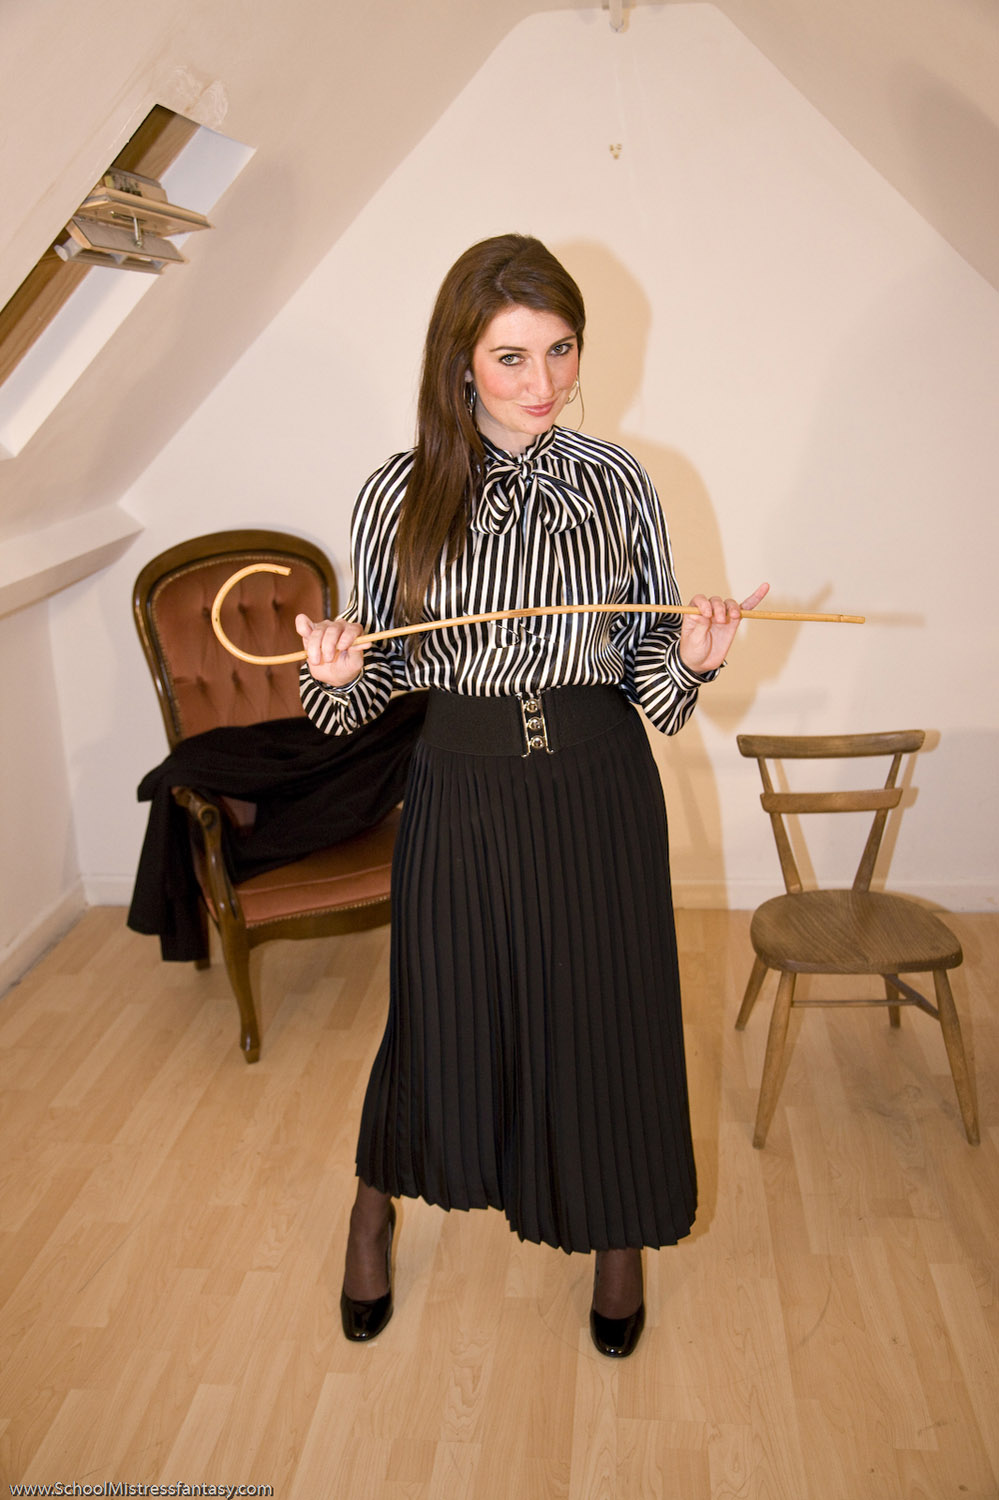 Click here to see more Miss Tibby @ School Mistress Fantasy